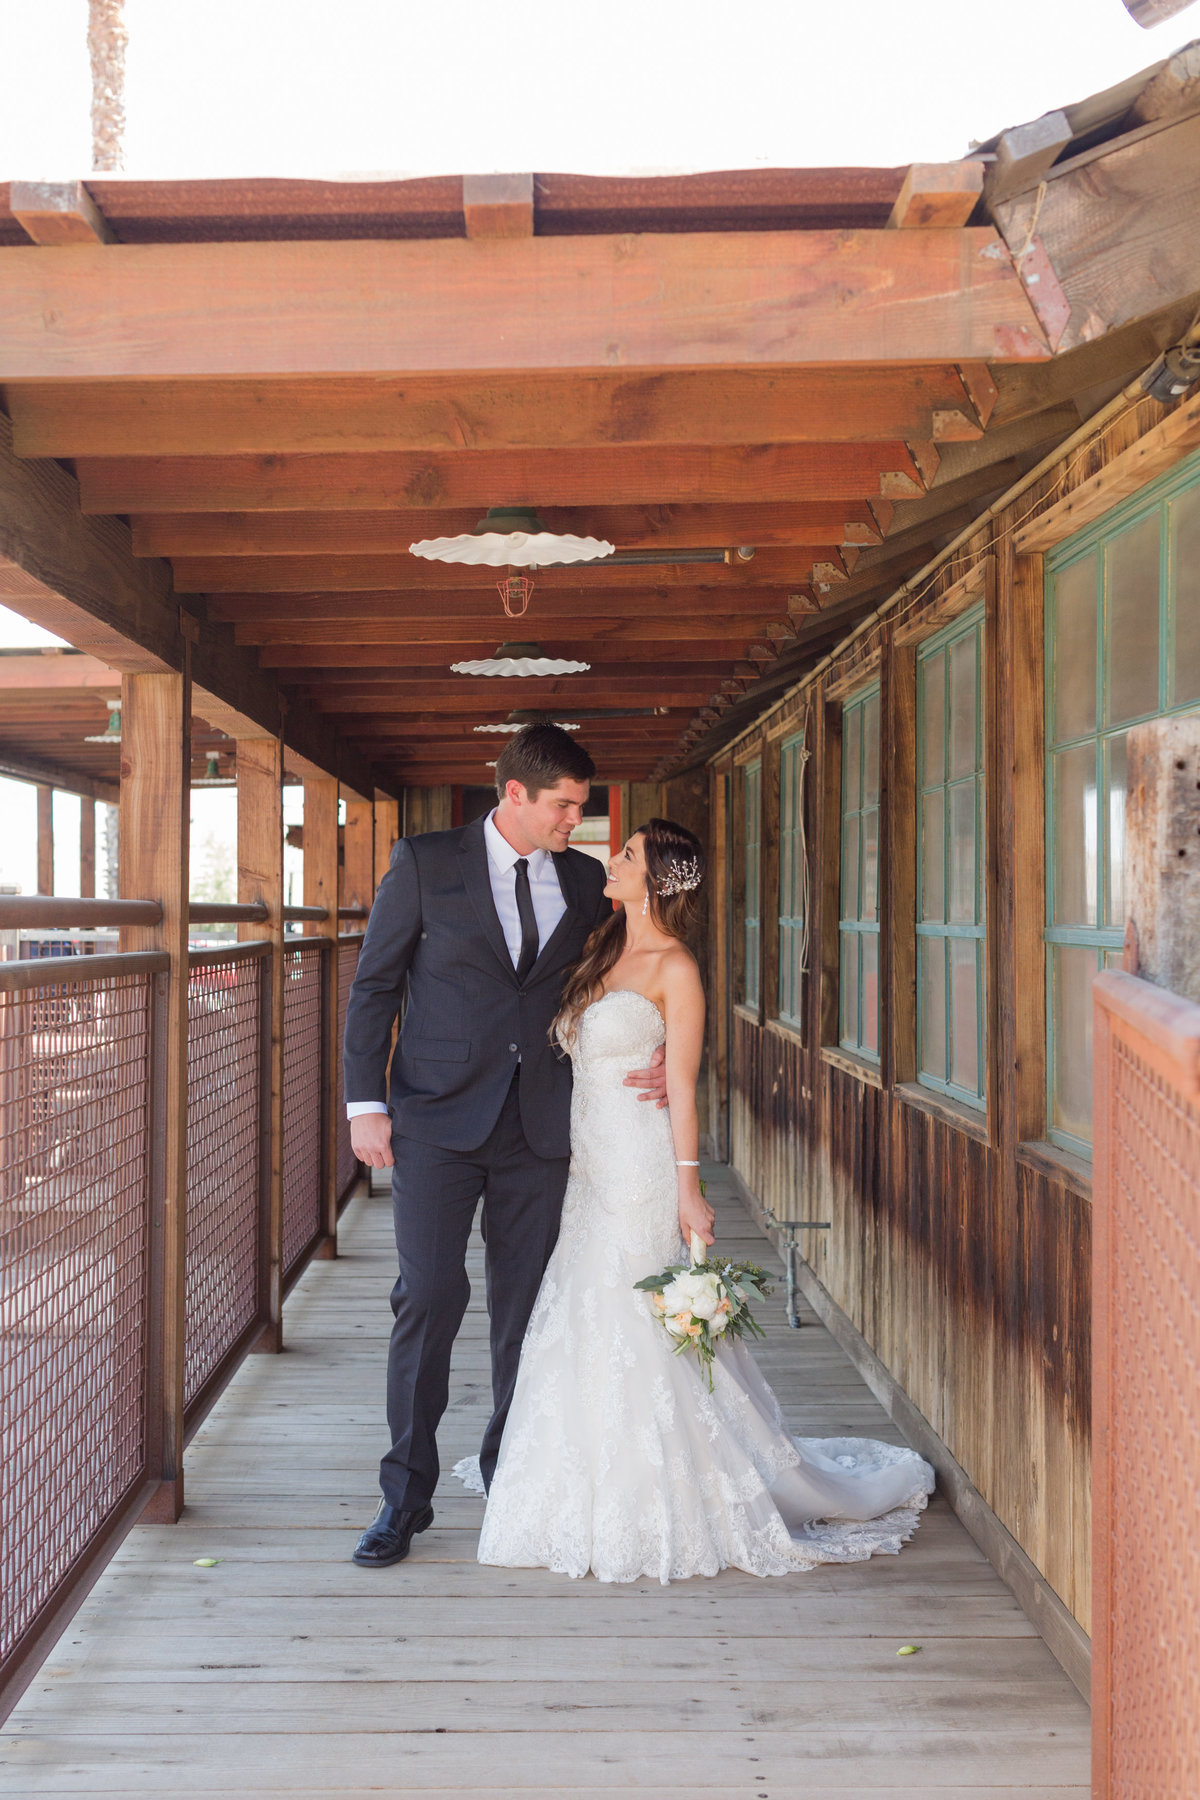 Erica Mendenhall Photography_Barn Wedding_MP_6311web